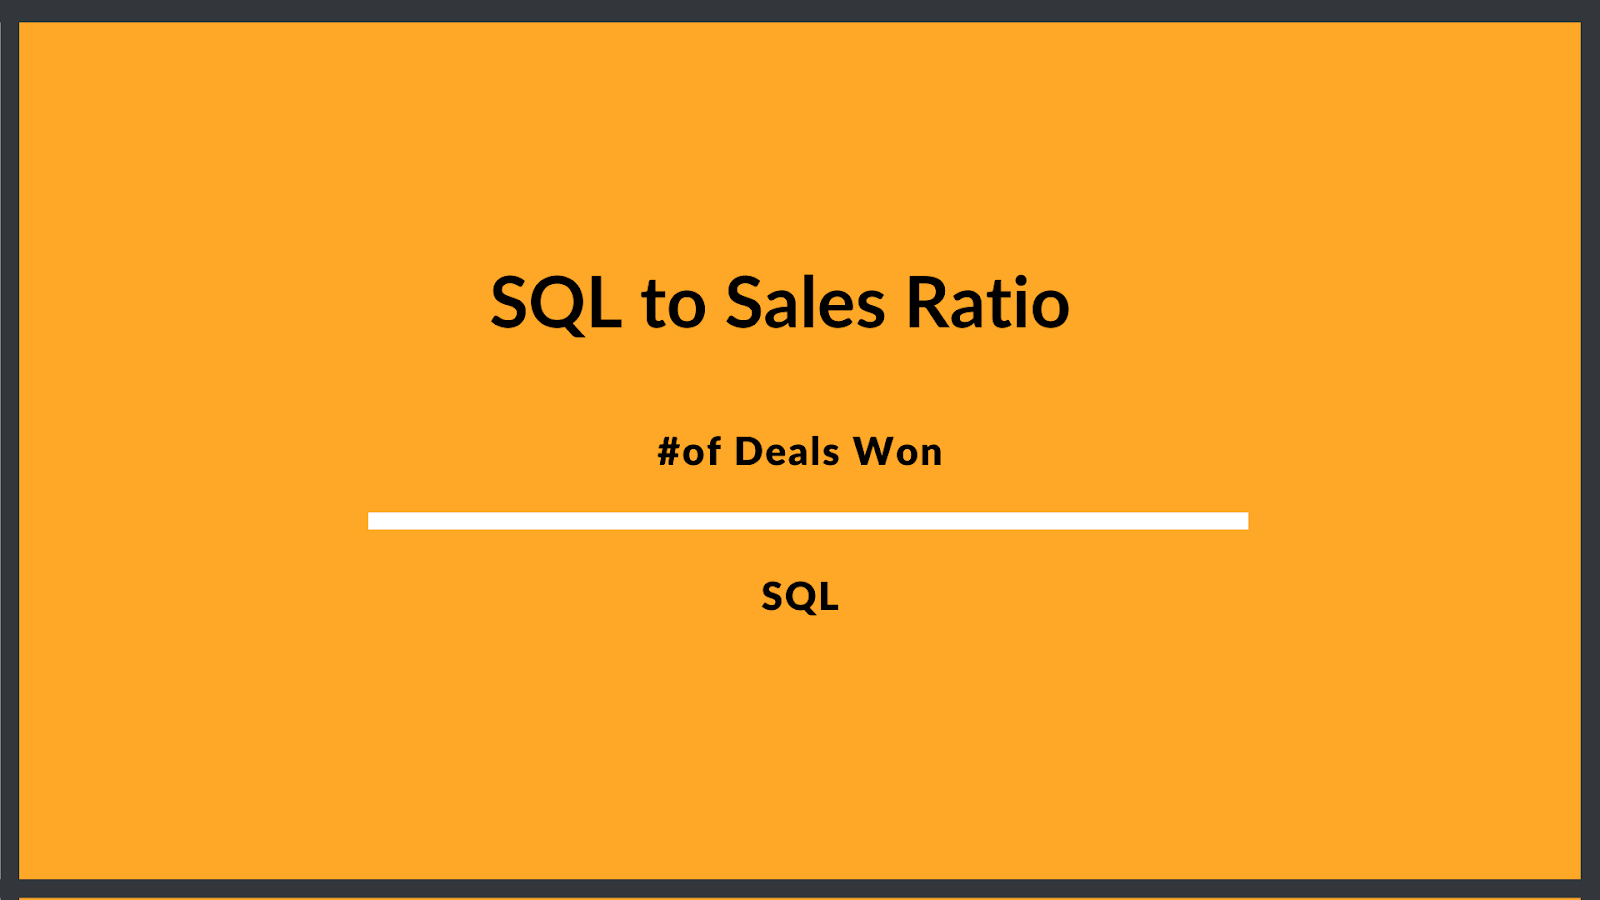 SQL to Sales Ratio calculation